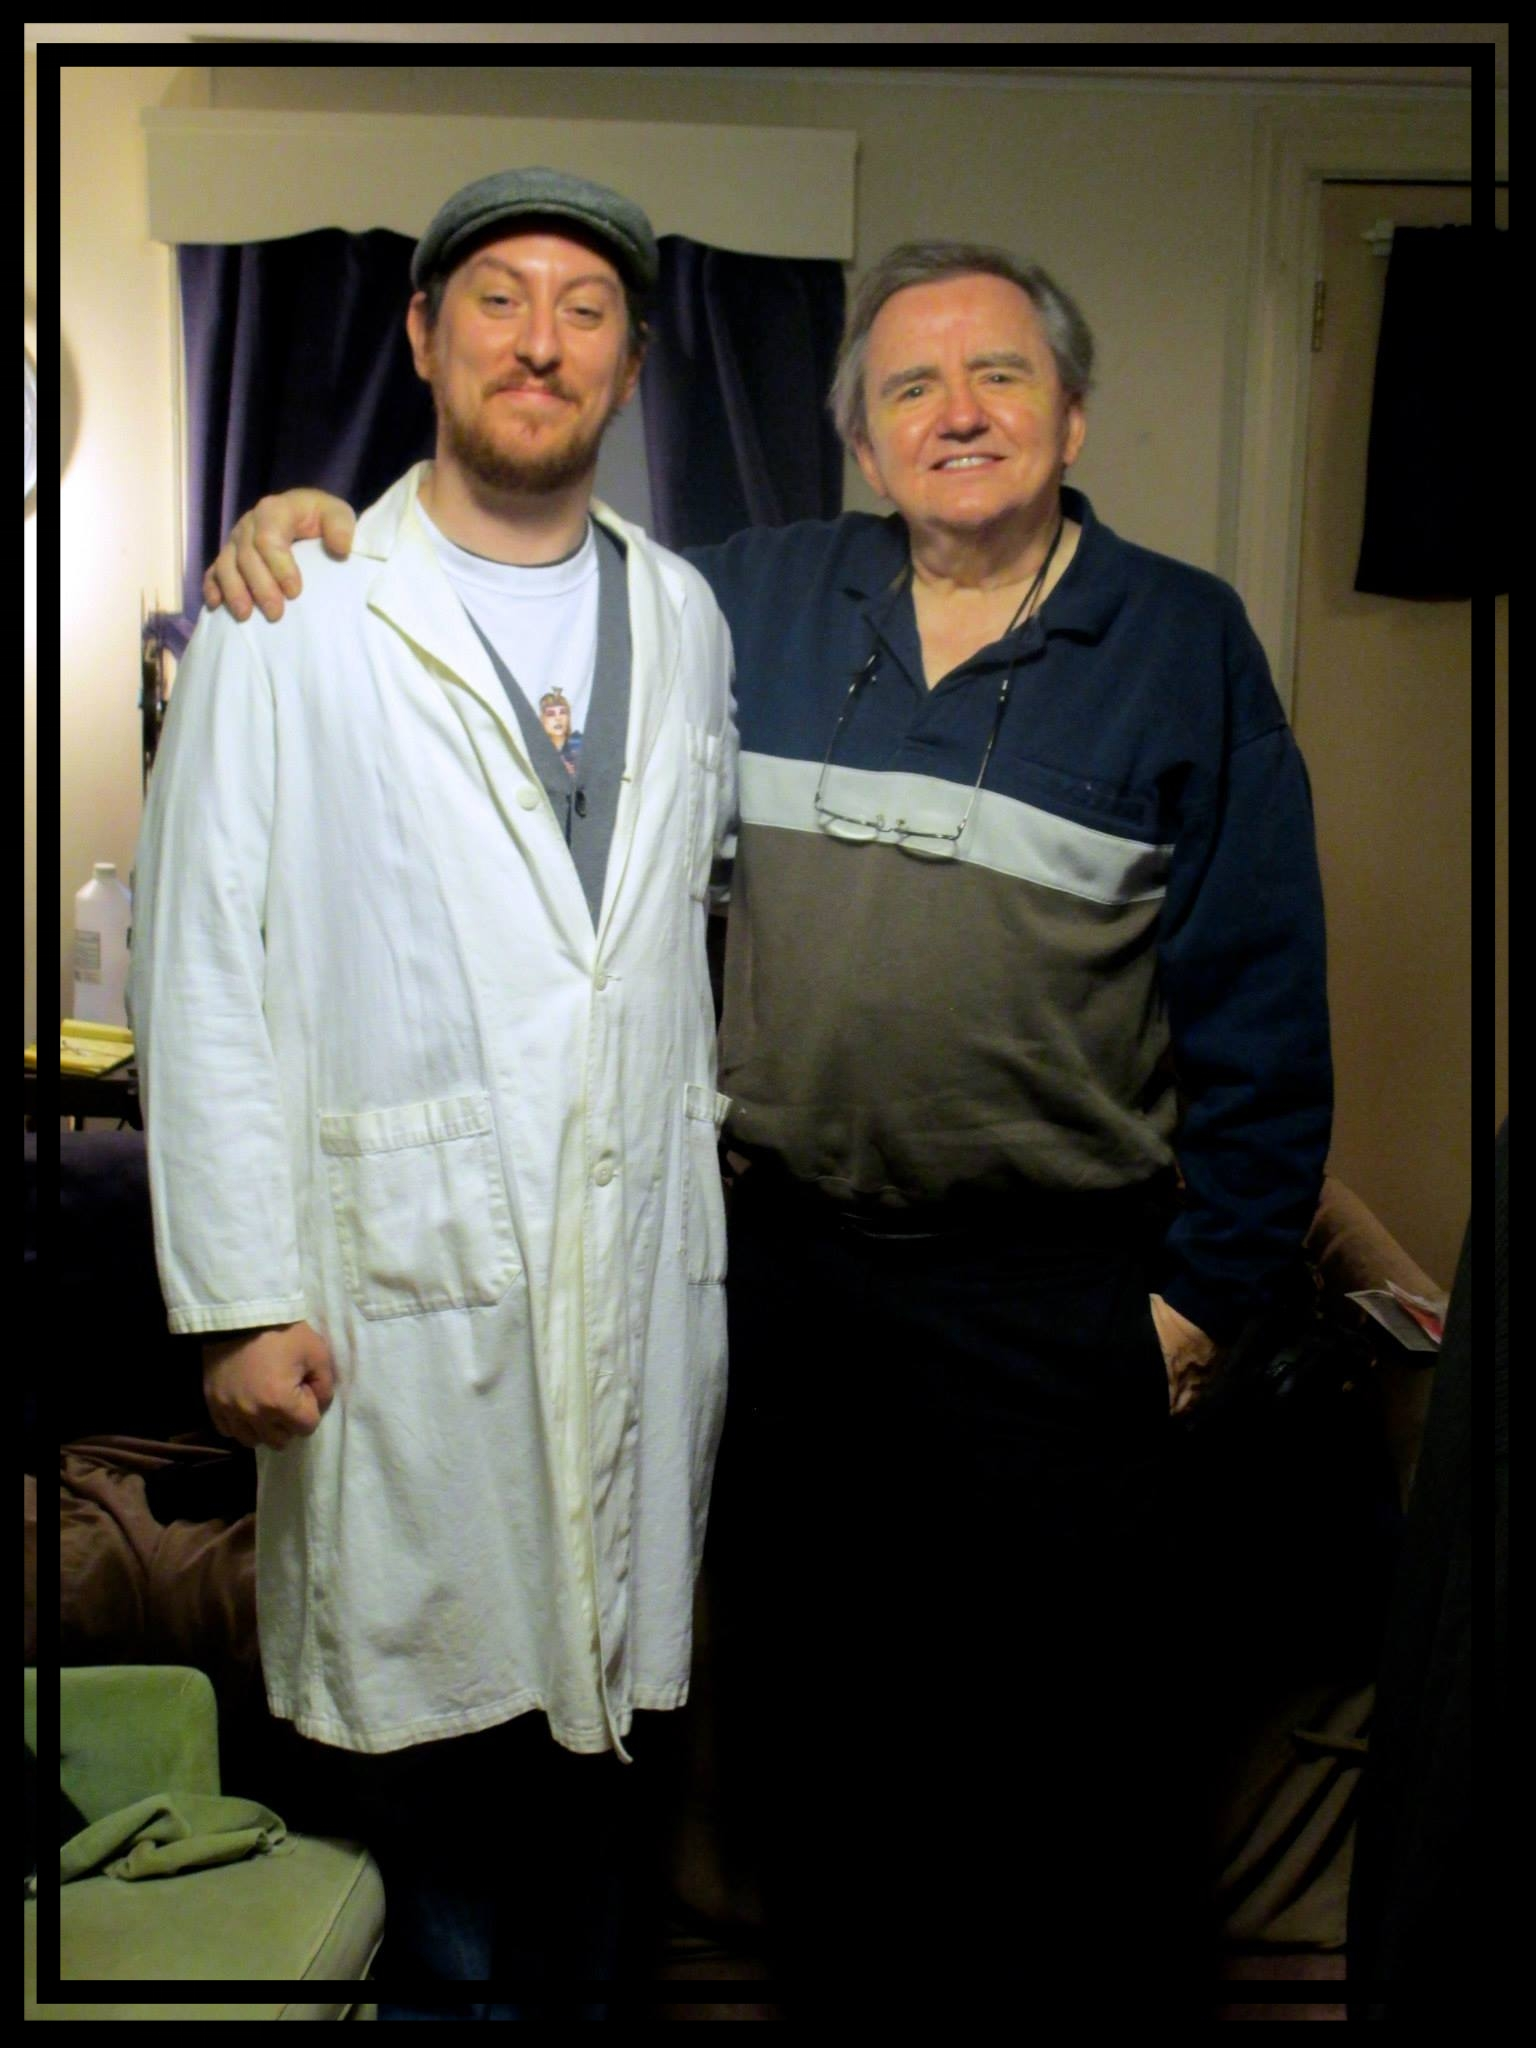 Jon Cross  and  George Stover  in 2014.  Jon  is wearing the white lab coat from   The Alien Factor  !